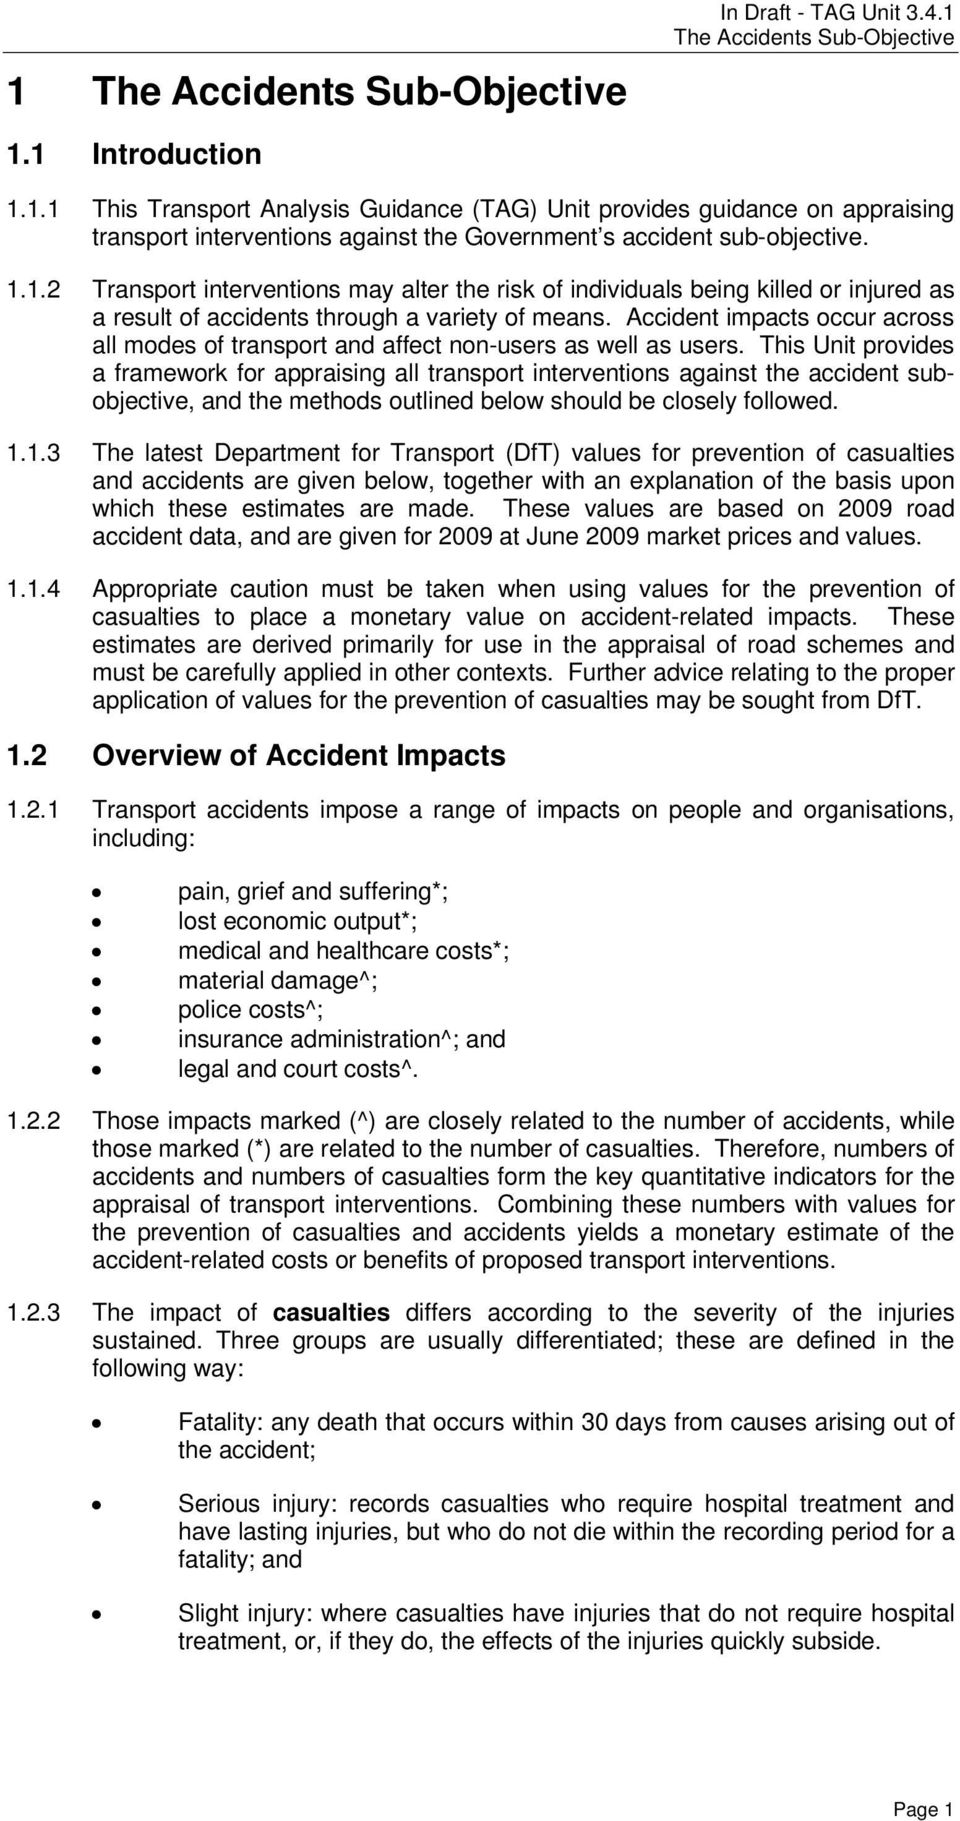 Accident impacts occur across all modes of transport and affect non-users as well as users.